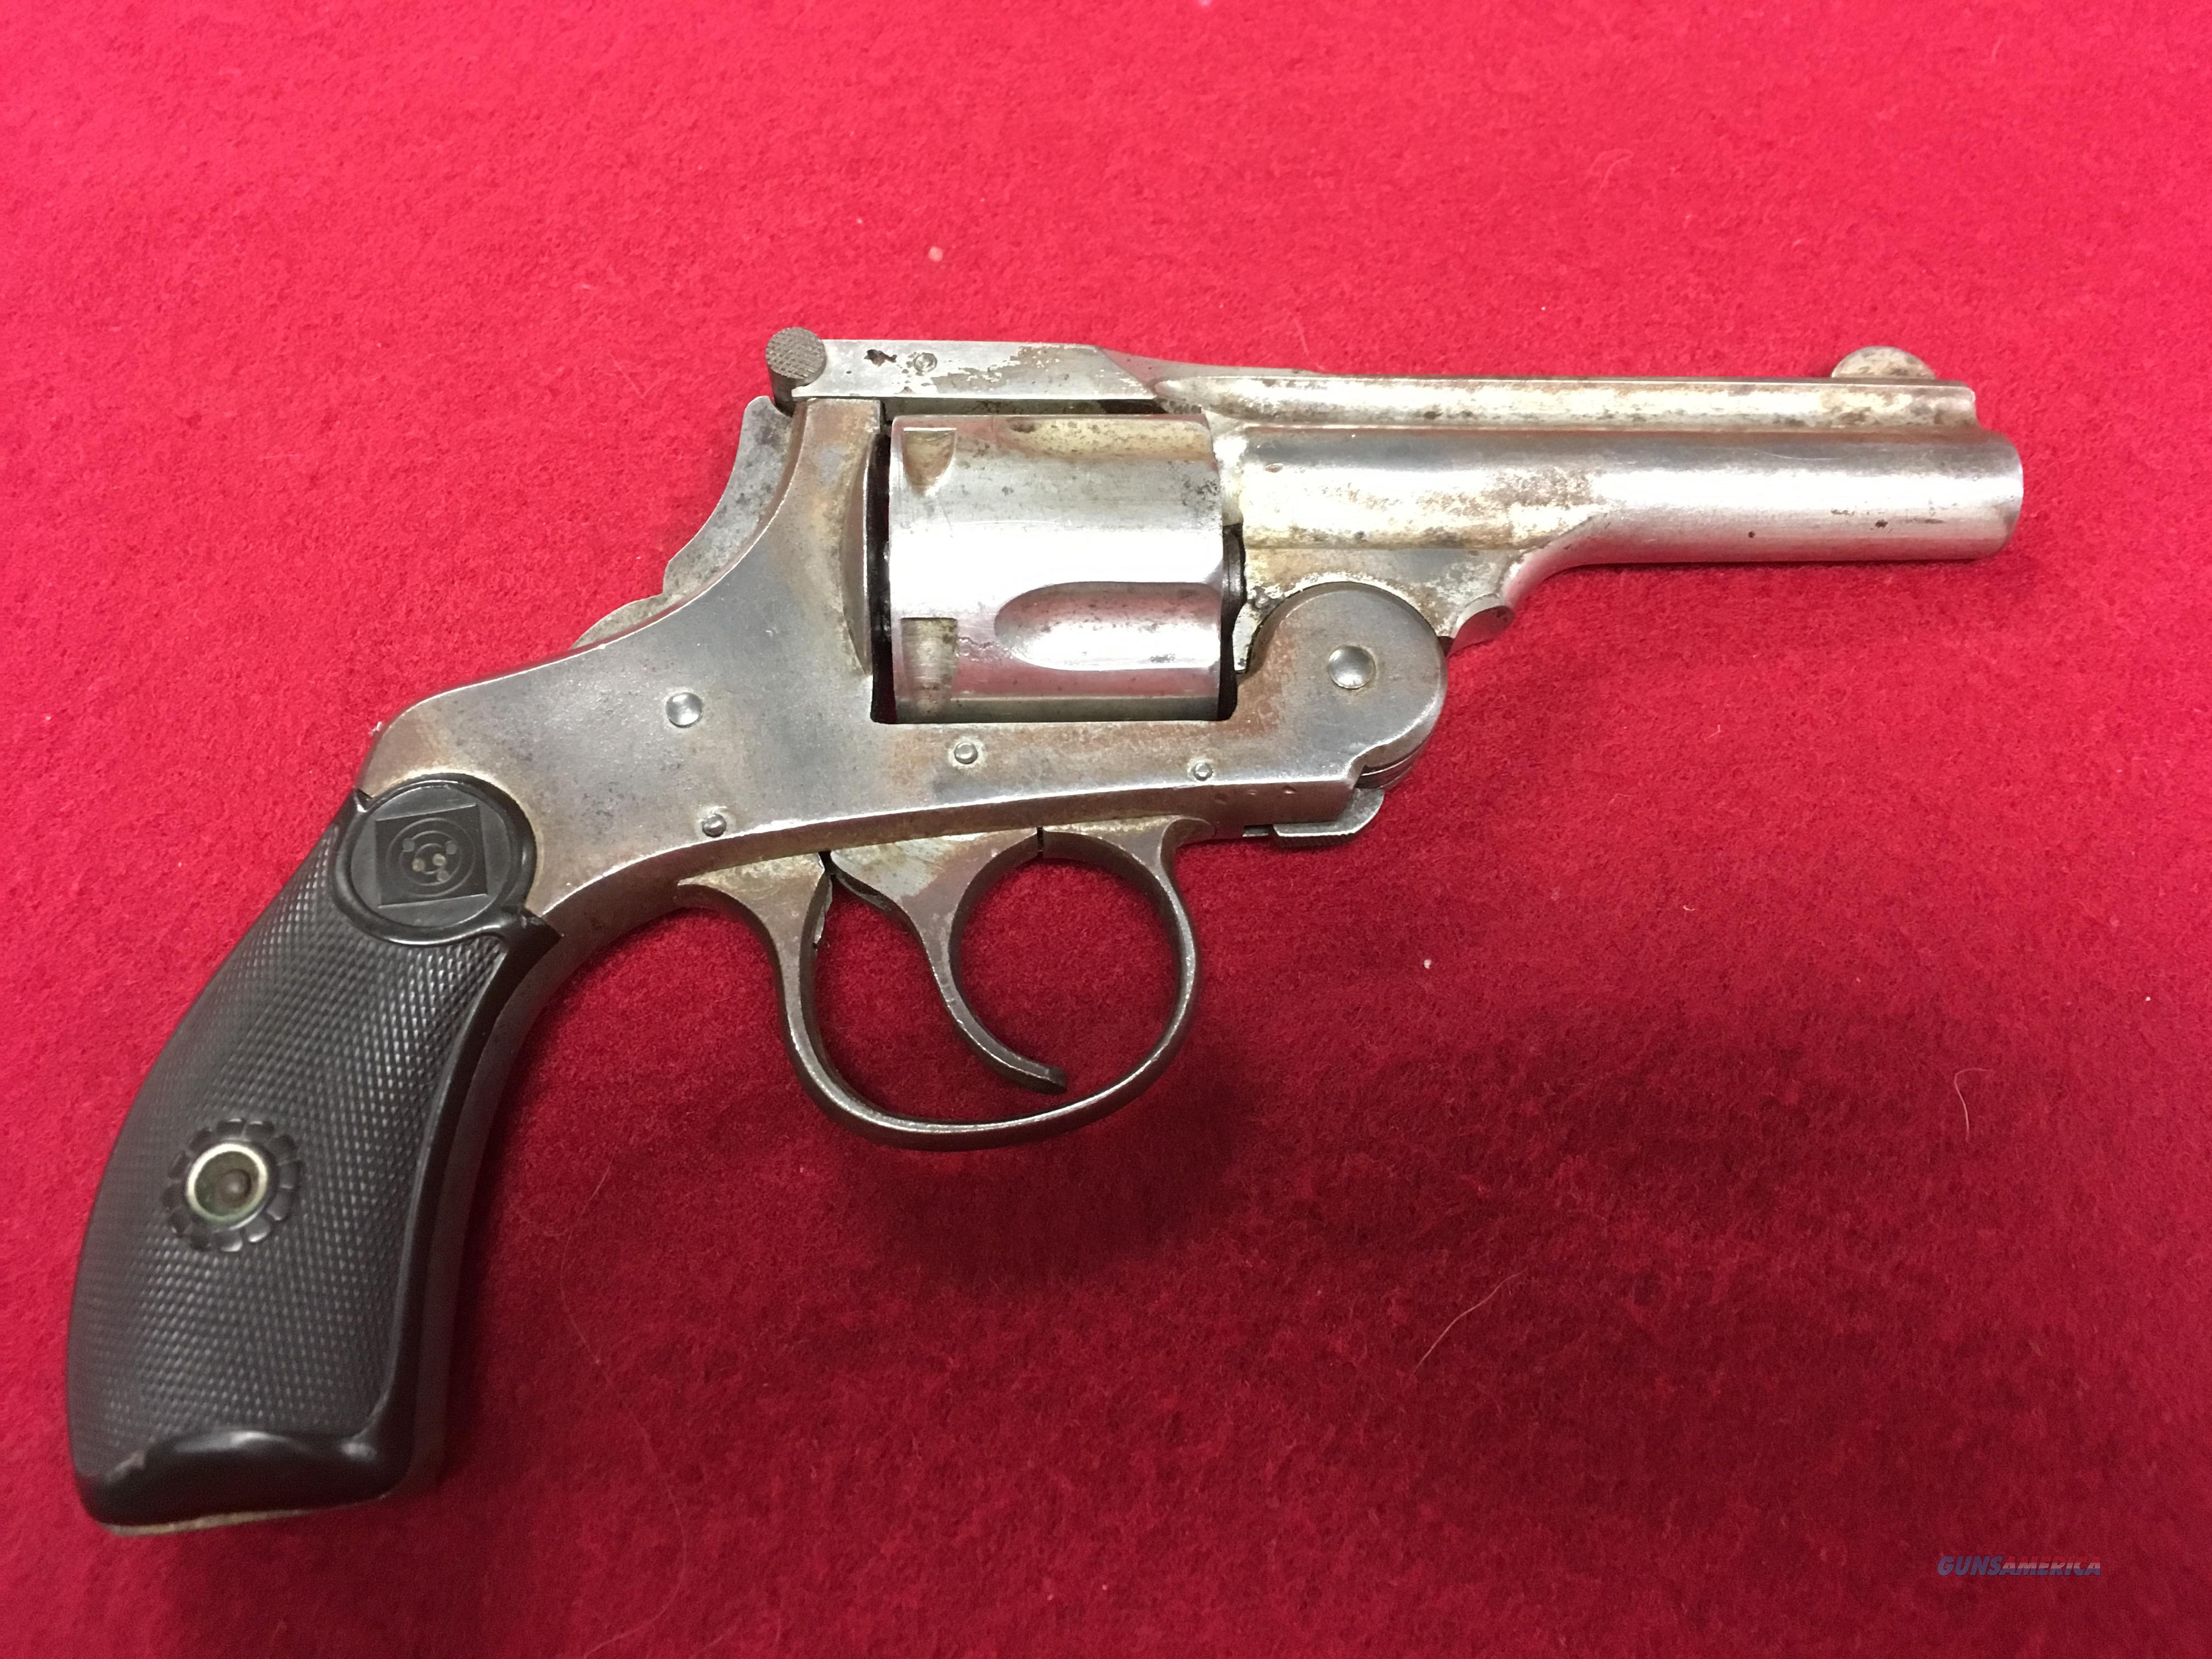 SMITH & WESSON ANTIQUE 38 DOUBLE ACTION  Guns > Pistols > Smith & Wesson Revolvers > Pre-1899